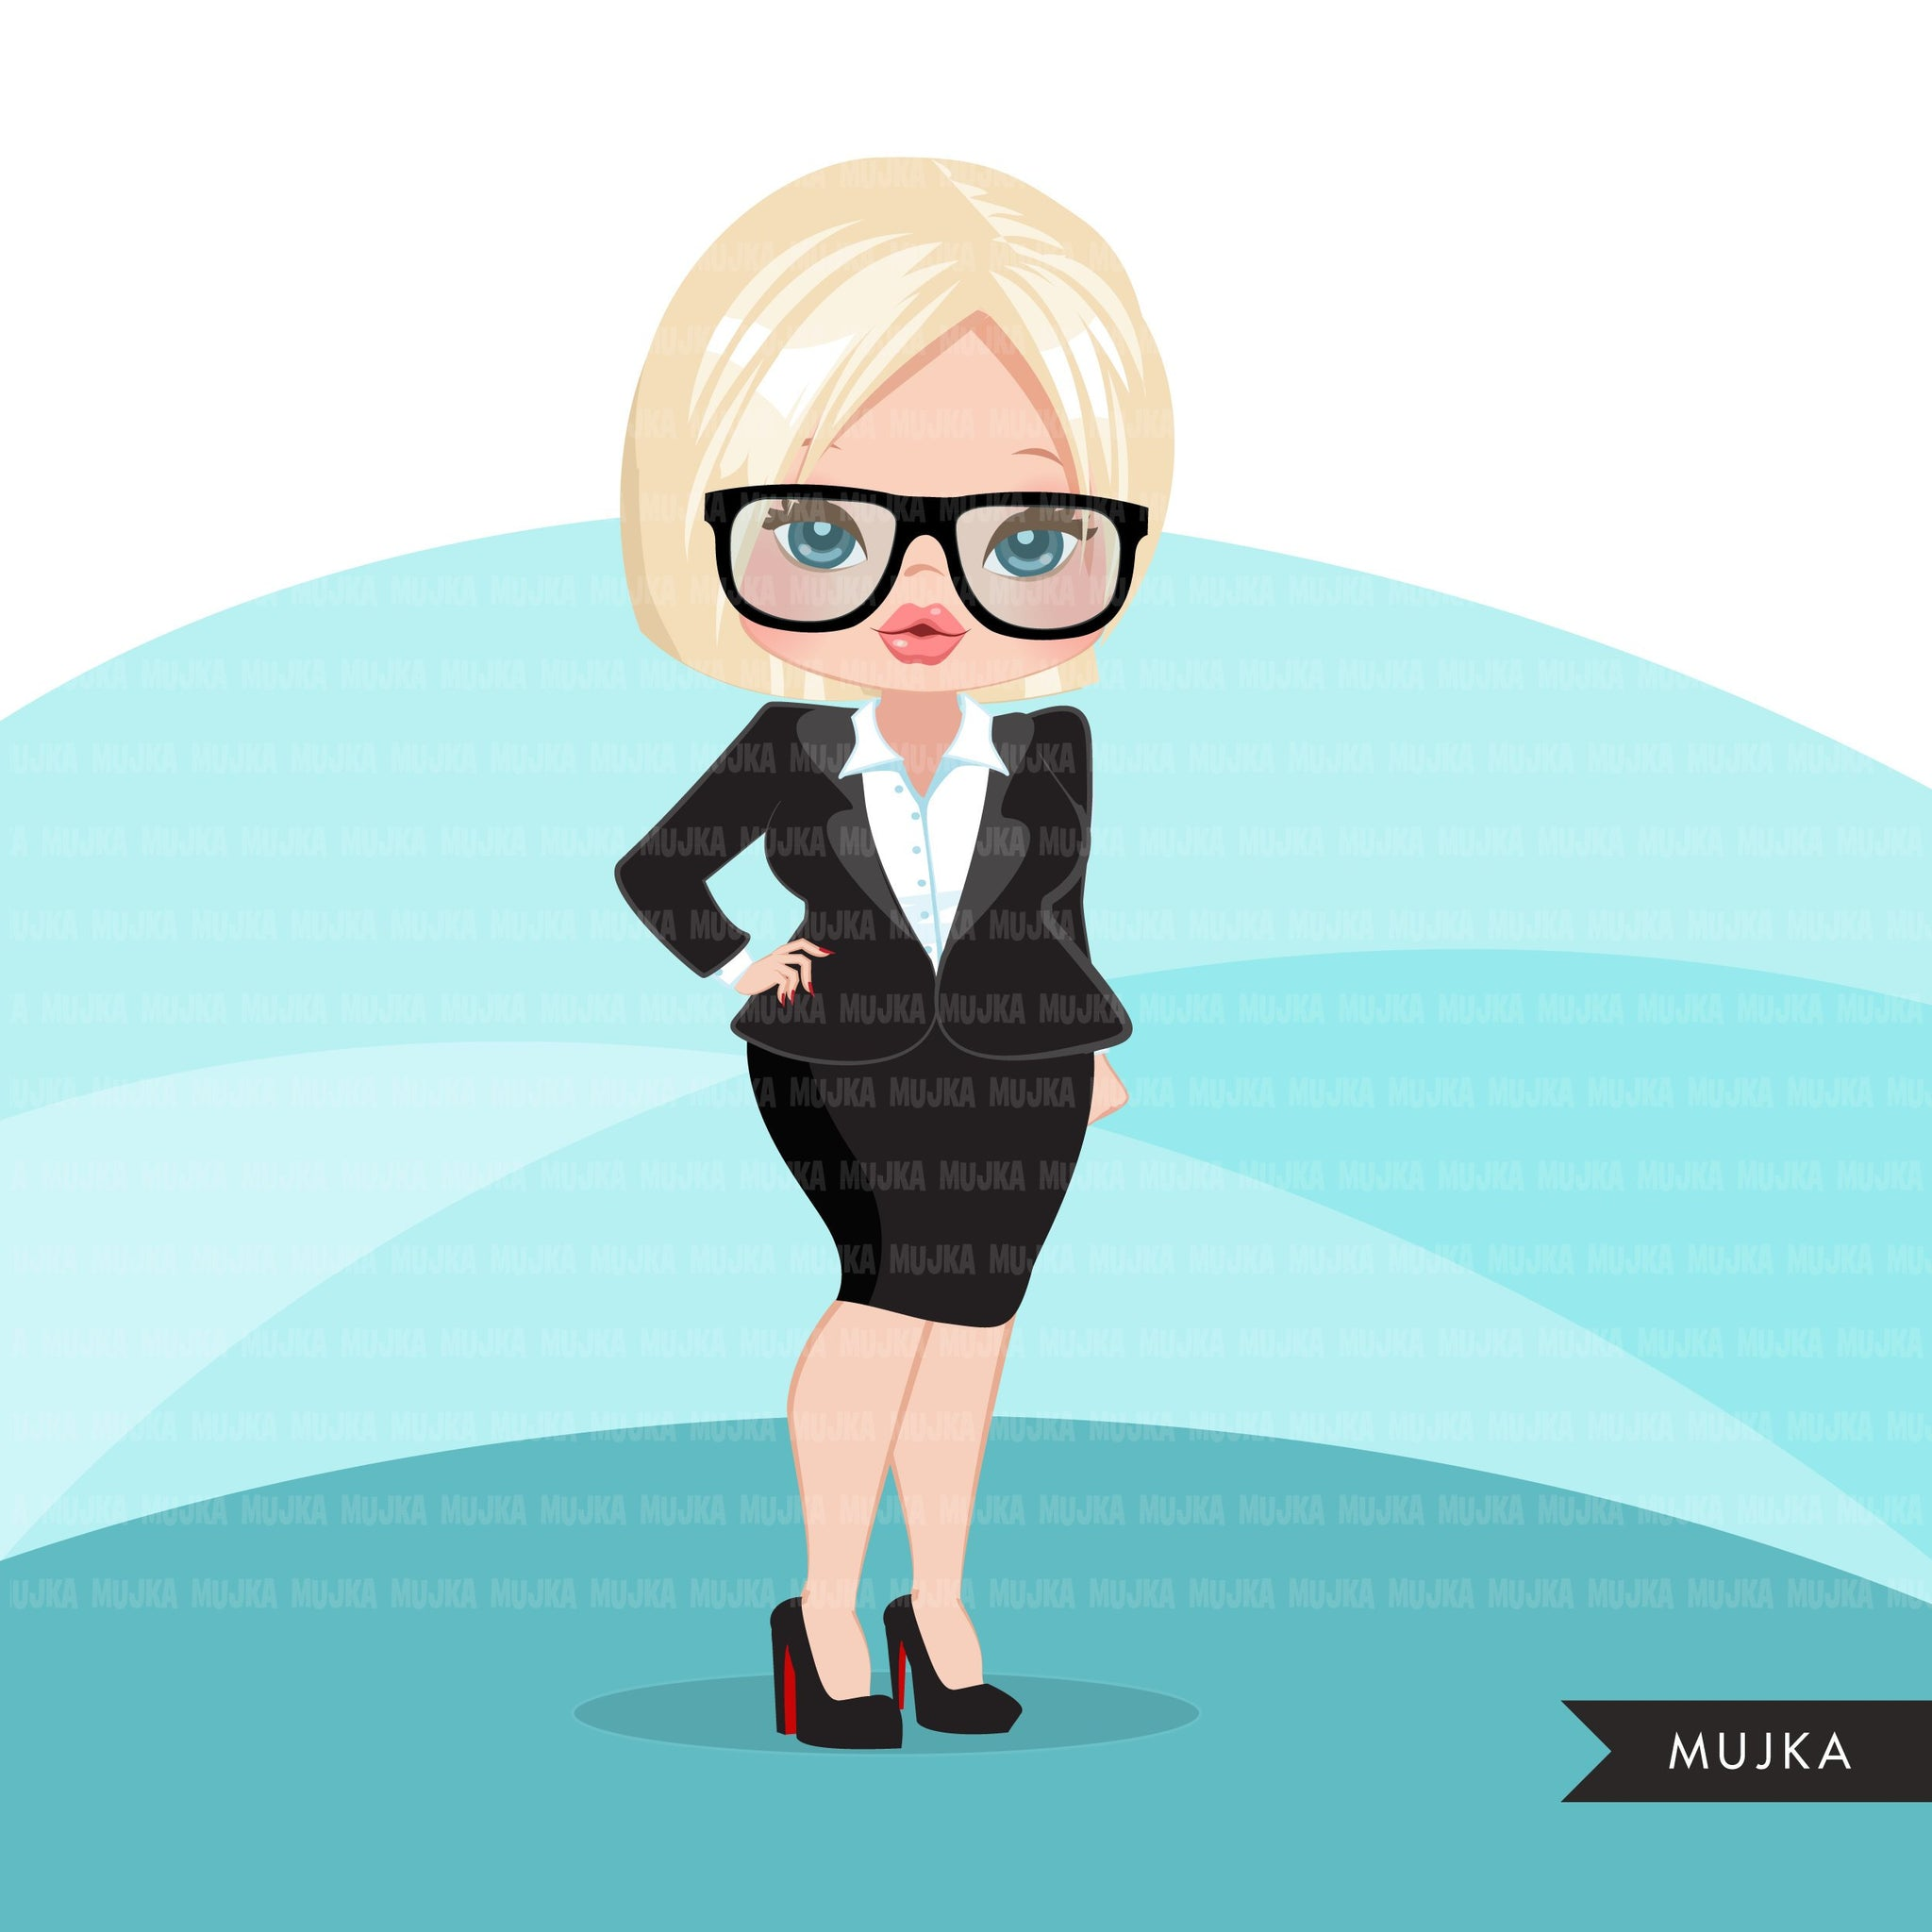 Blonde woman clipart with business suit, briefcase and glasses, girl boss